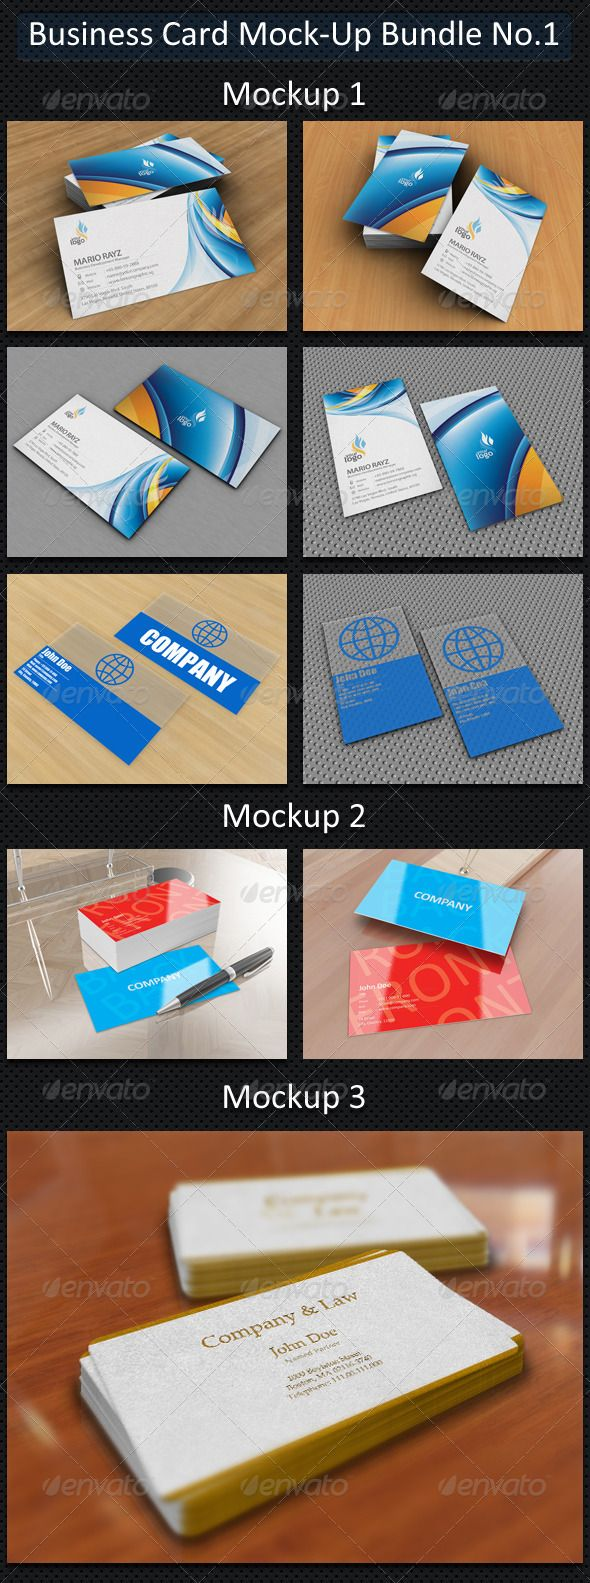 "Business Card Mock-Up Bundle No.1  #GraphicRiver        Business Card Mock-Up Bundle No.1 Bundle elements:   Business Card Mock-Up No.1  Business Card Mock-Up No.2  Business Card Mock-Up No.3  Mockup Descriptions: Business Card Mock-Up No.1 Update: Added support for plastic business cards  Features   Optimized for 3.5"" x 2"" cards.  Editable via smart object  4 types of mock-ups, 2 for horizontal and 2 for vertical business cards  High resolution 1500×1125px  Customizable background and cards…"